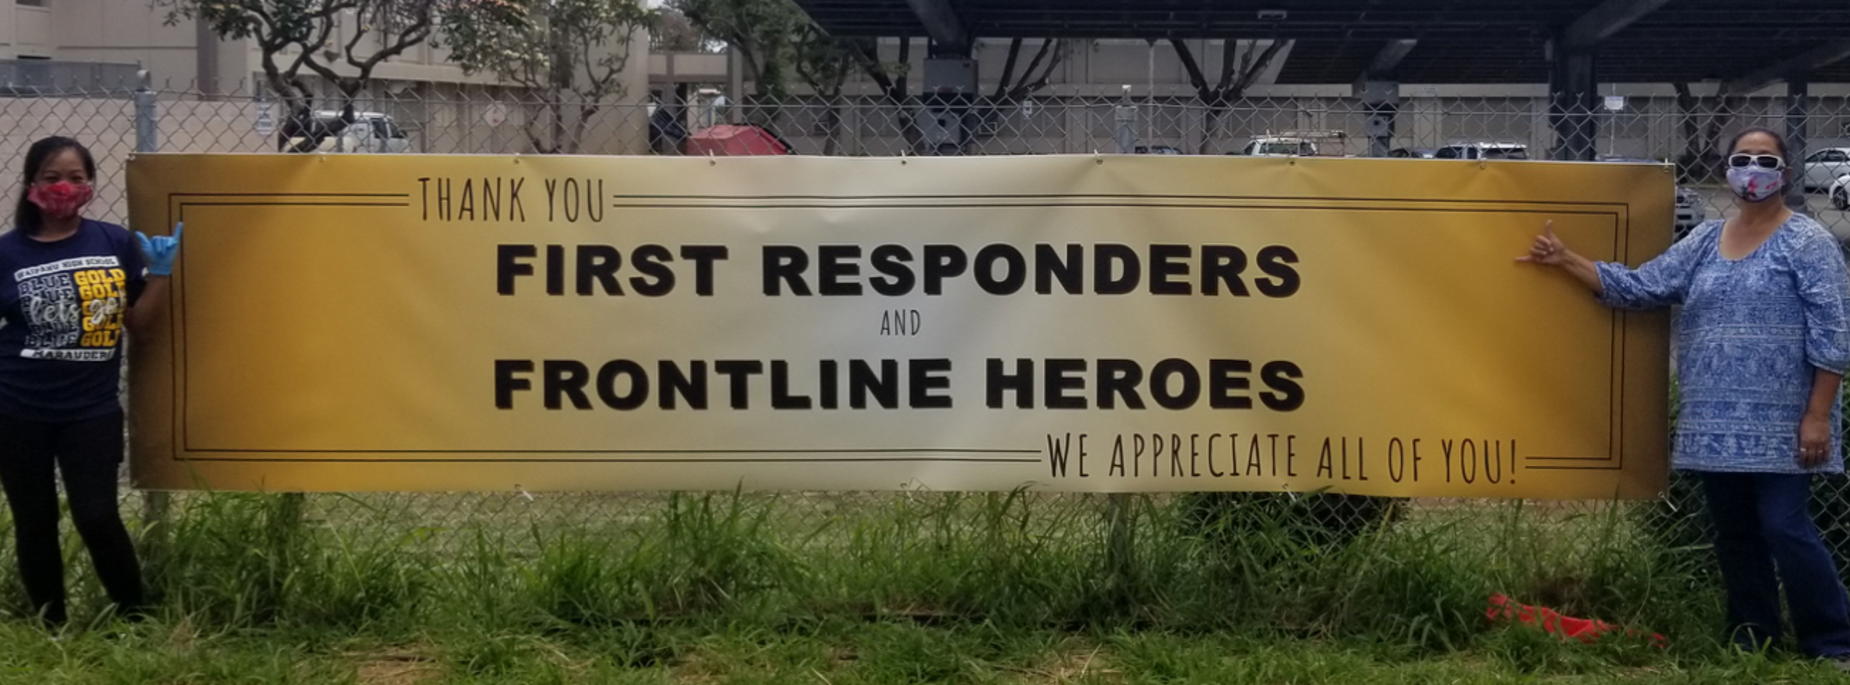 Thank you First Responders and Frontline Heros